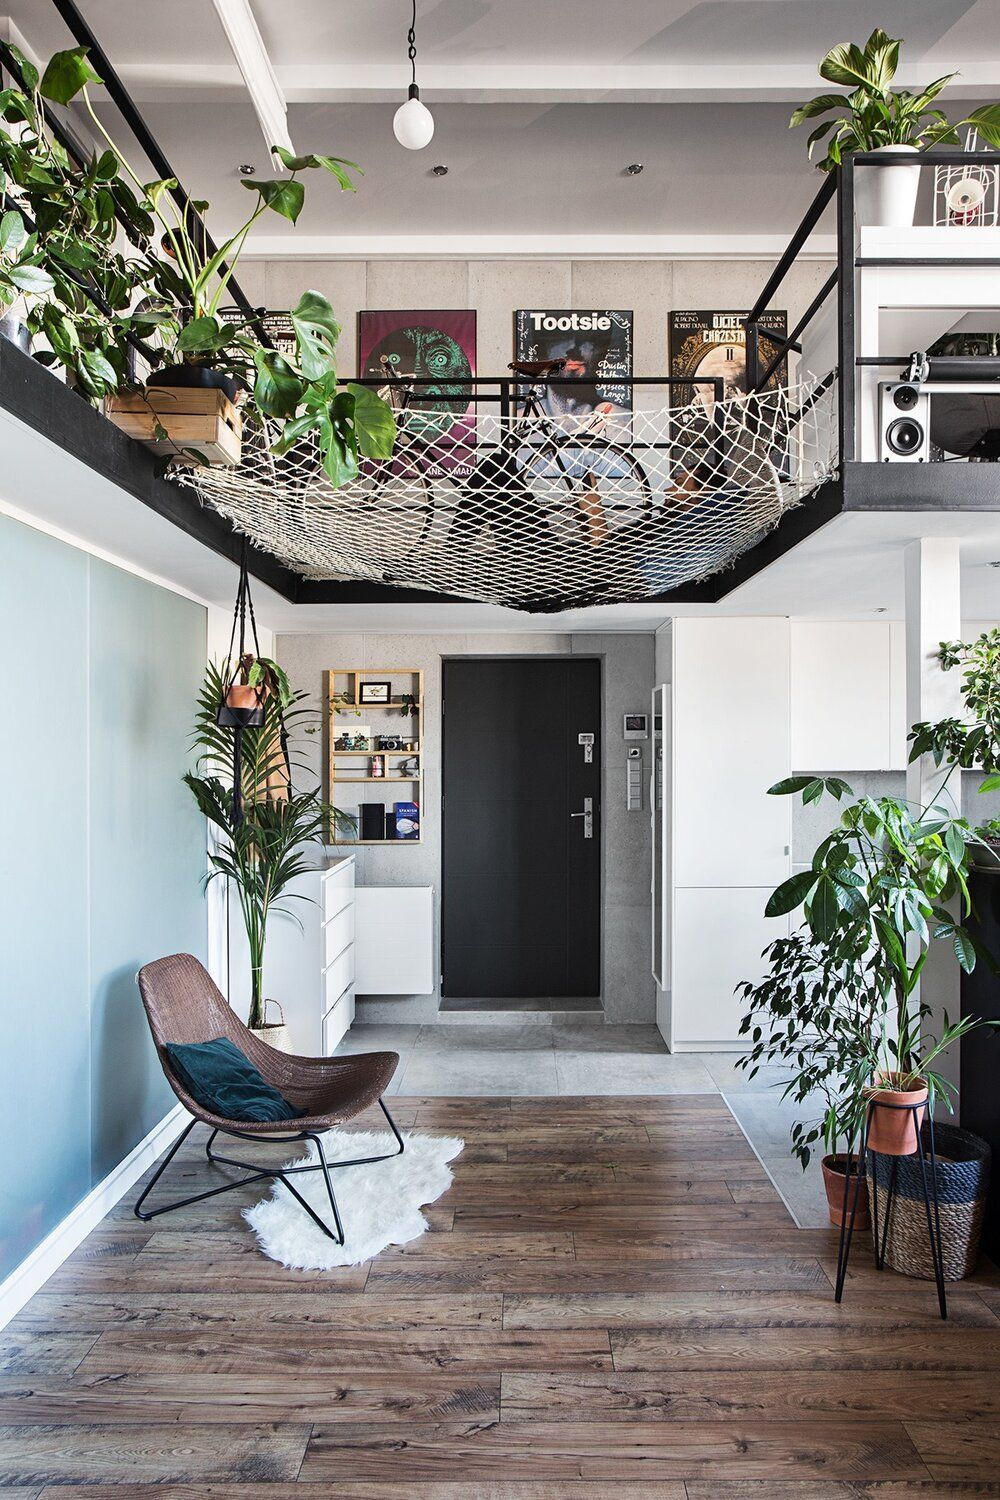 A Creative Loft Apartment in Poland with Exposed Brick and ...